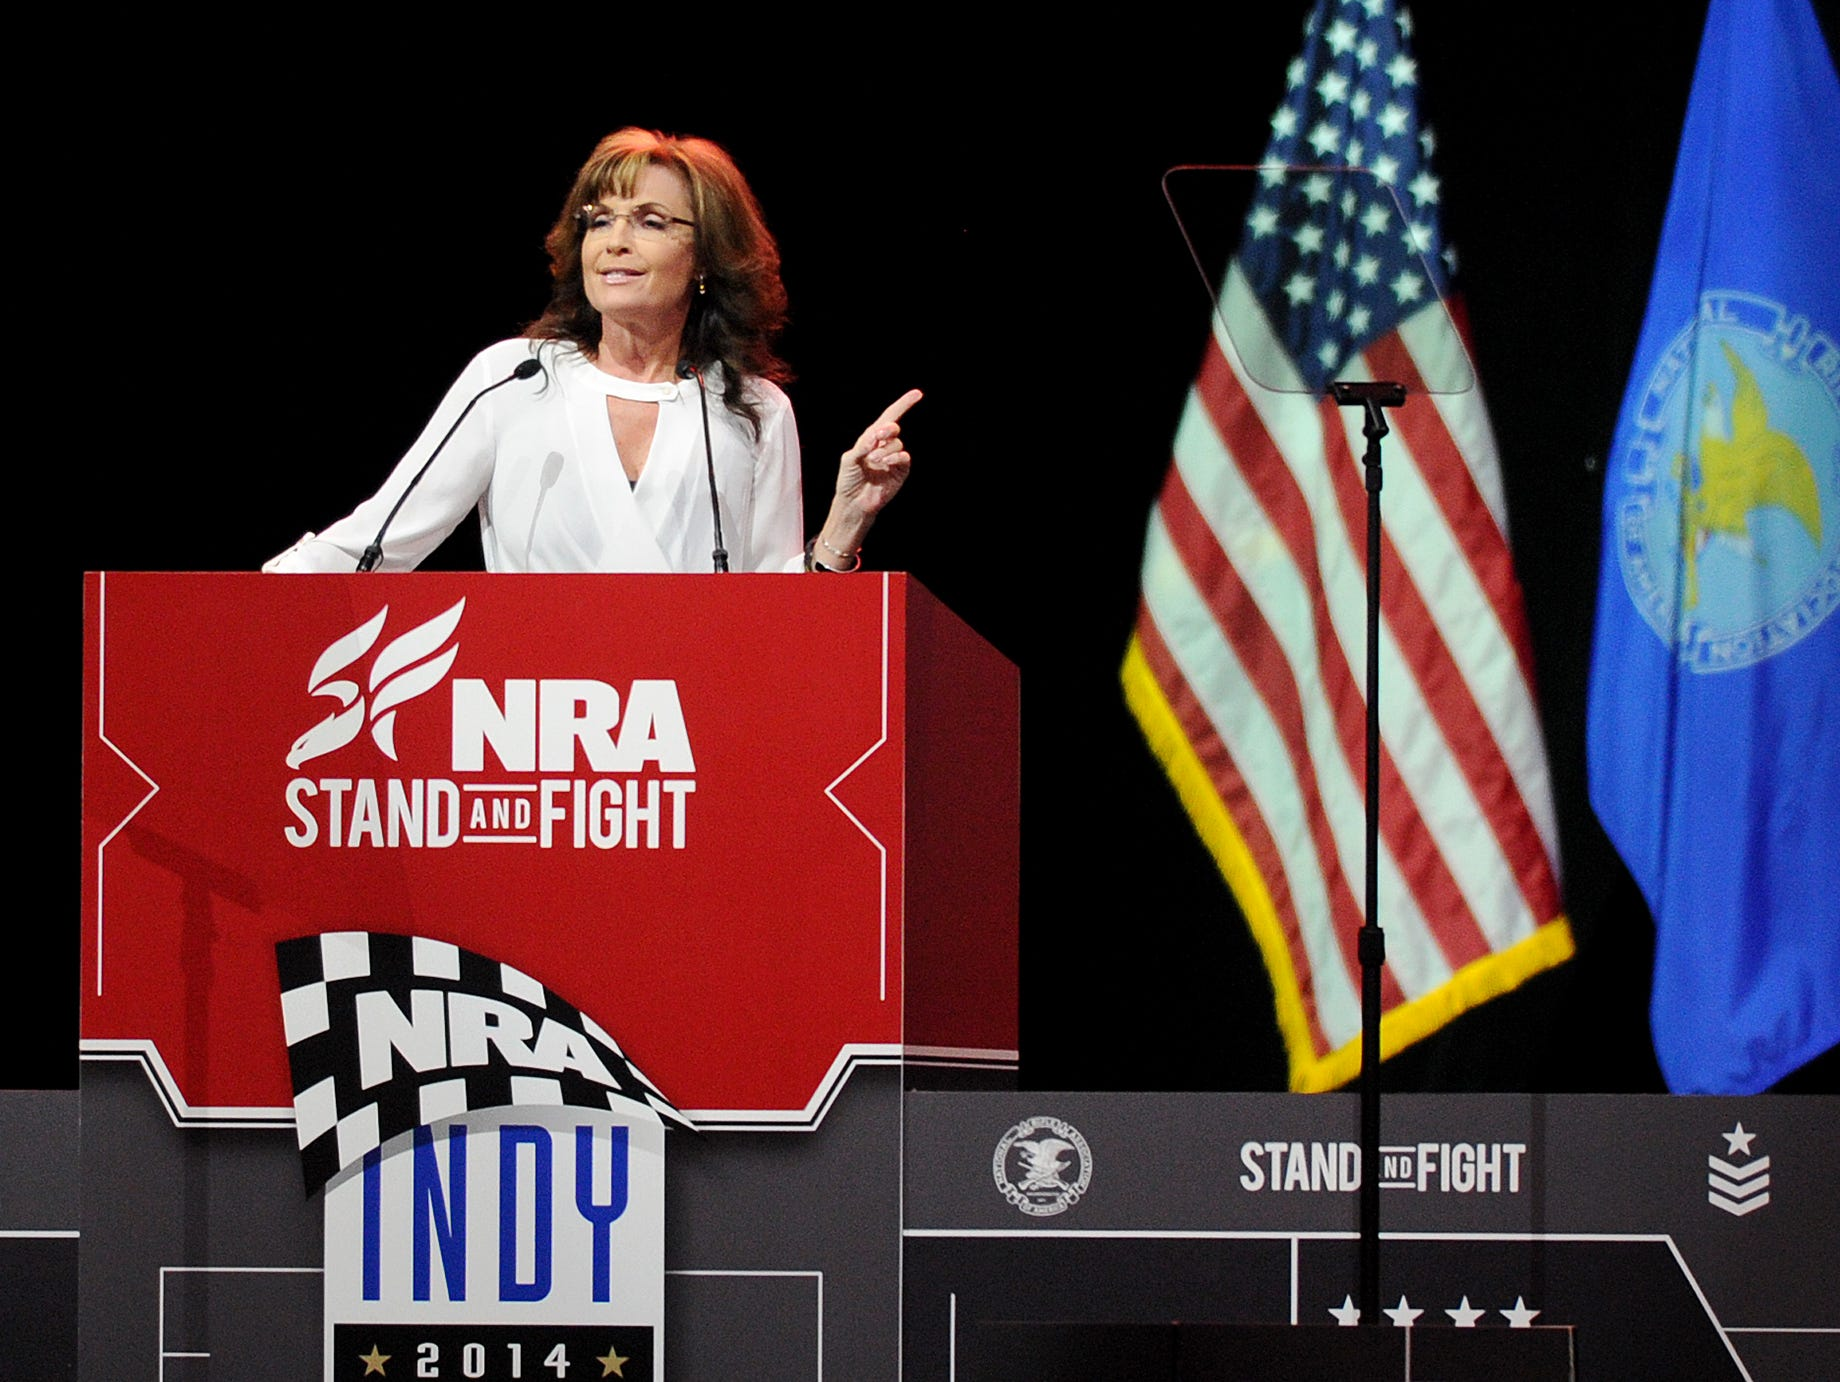 Sarah Palin speaks at the NRA Stand and Fight Rally during the 143rd National Rifle Association Annual Meeting at Lucas Oil Stadium, Saturday, April 26, 2014, in Indianapolis.